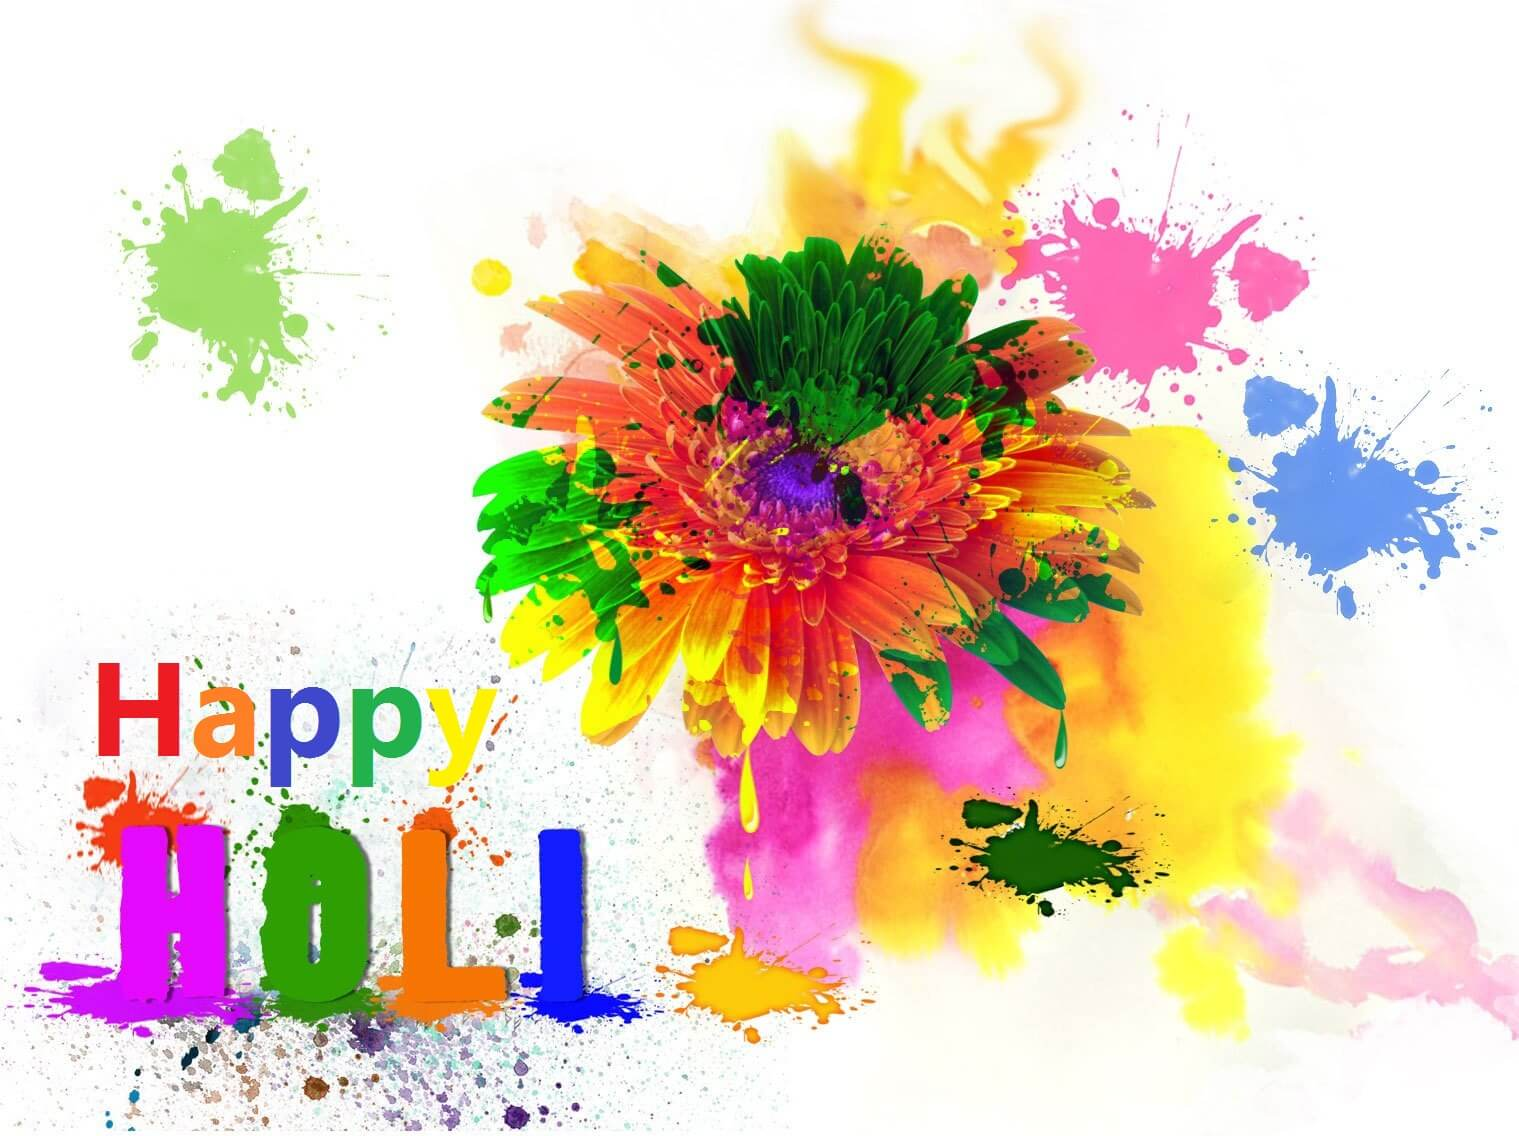 happy holi 2019 from happyfestivals.com